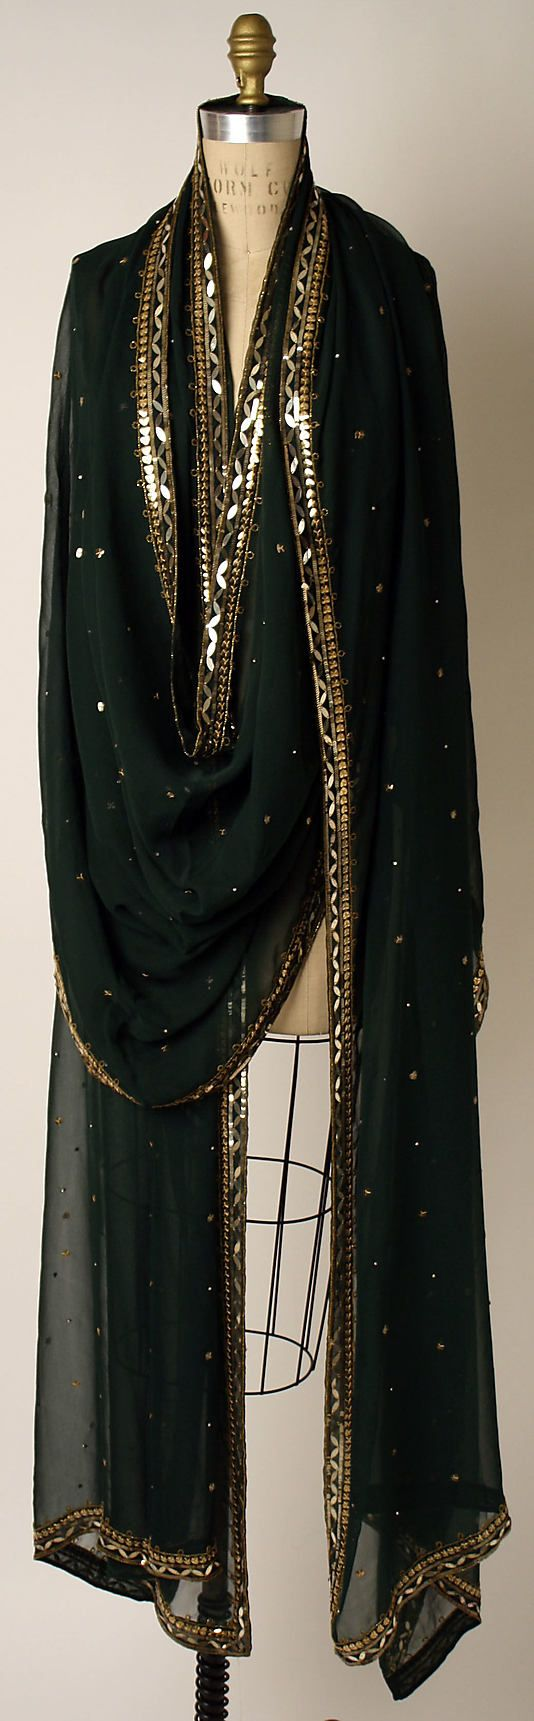 sequined indian scarves. Dior Scarf - 1950's-60's- House of Dior (French, founded 1947) - Silk, plastic, rhinestones